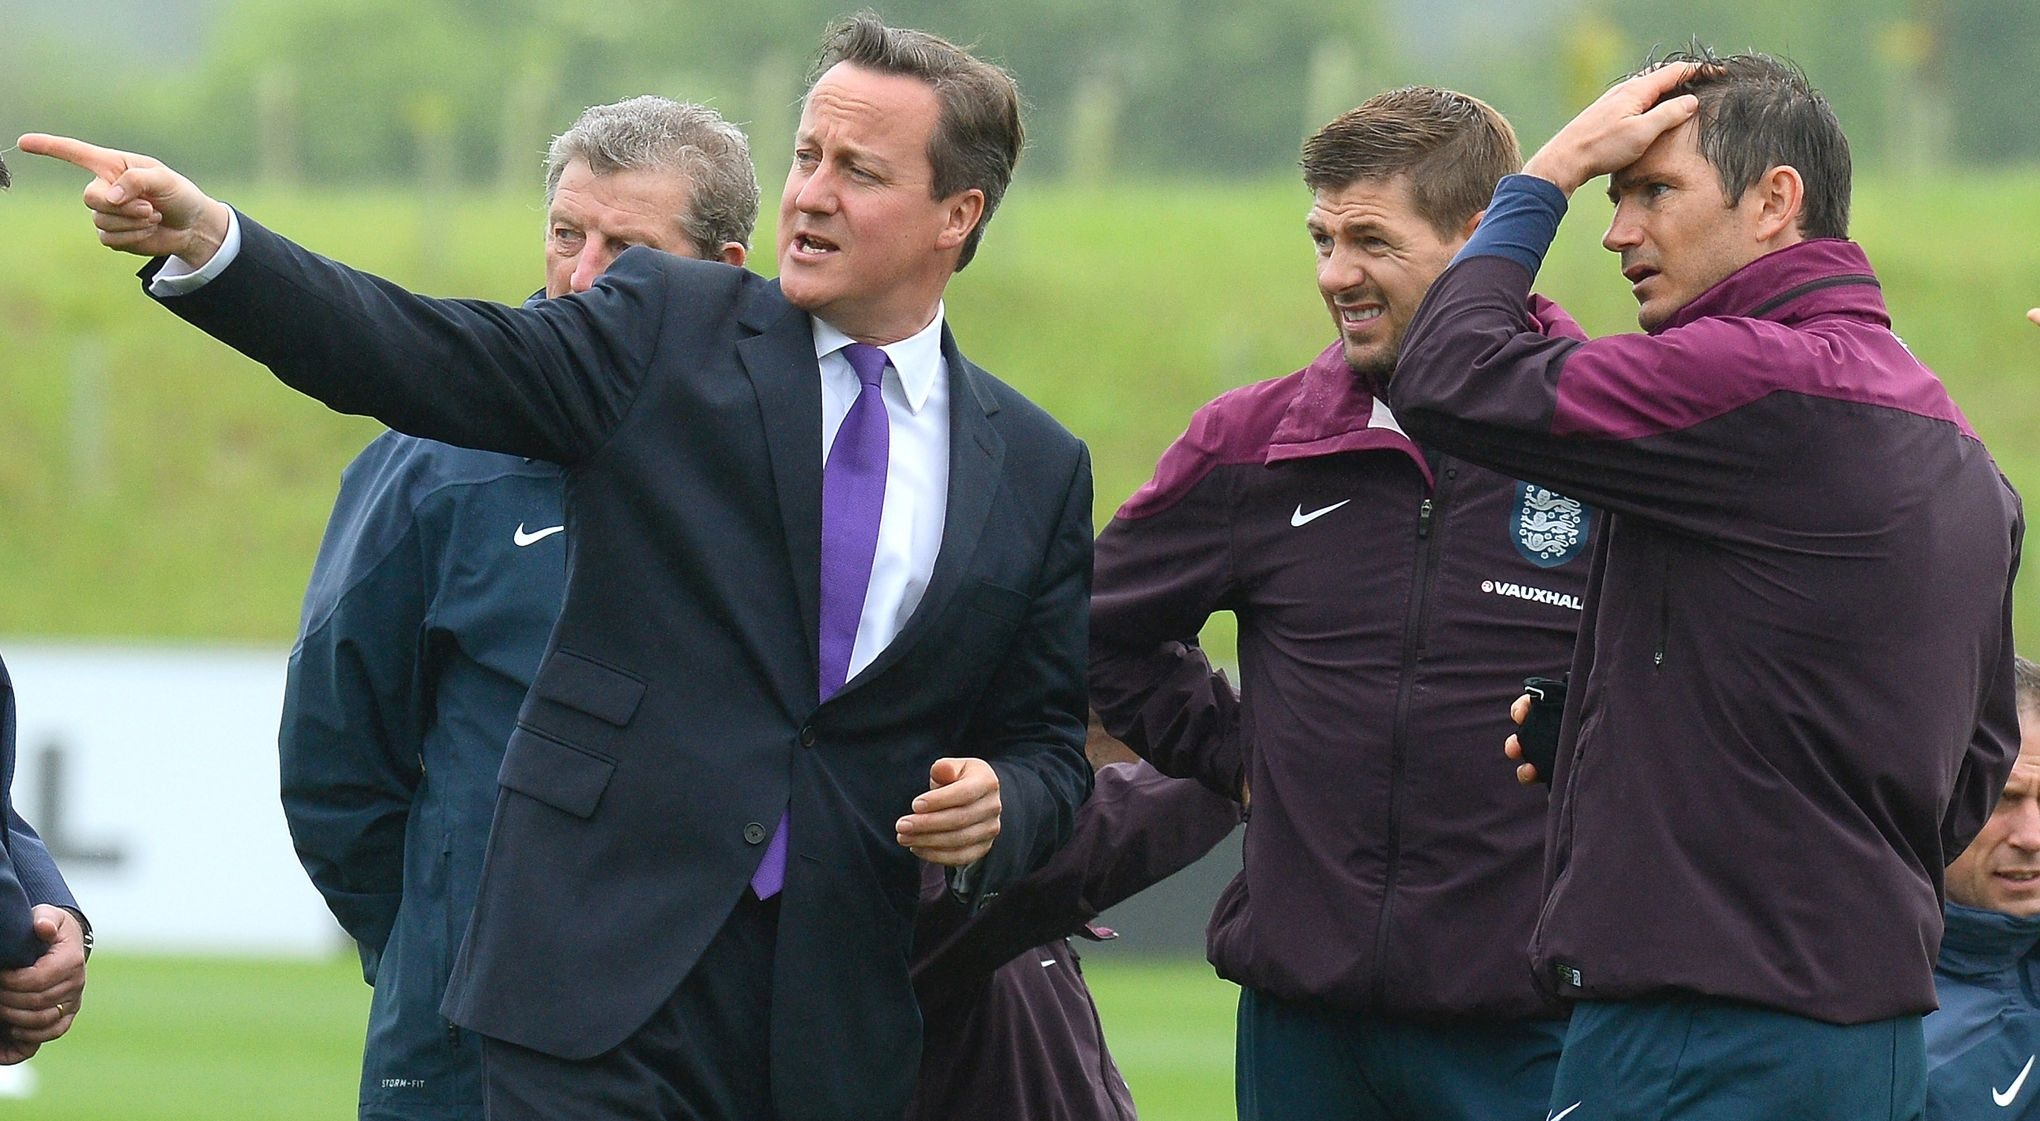 NEWS : David Cameron rend visite a l equipe nationale d Angleterre de football - Burton upon Trent - 29/05/2014